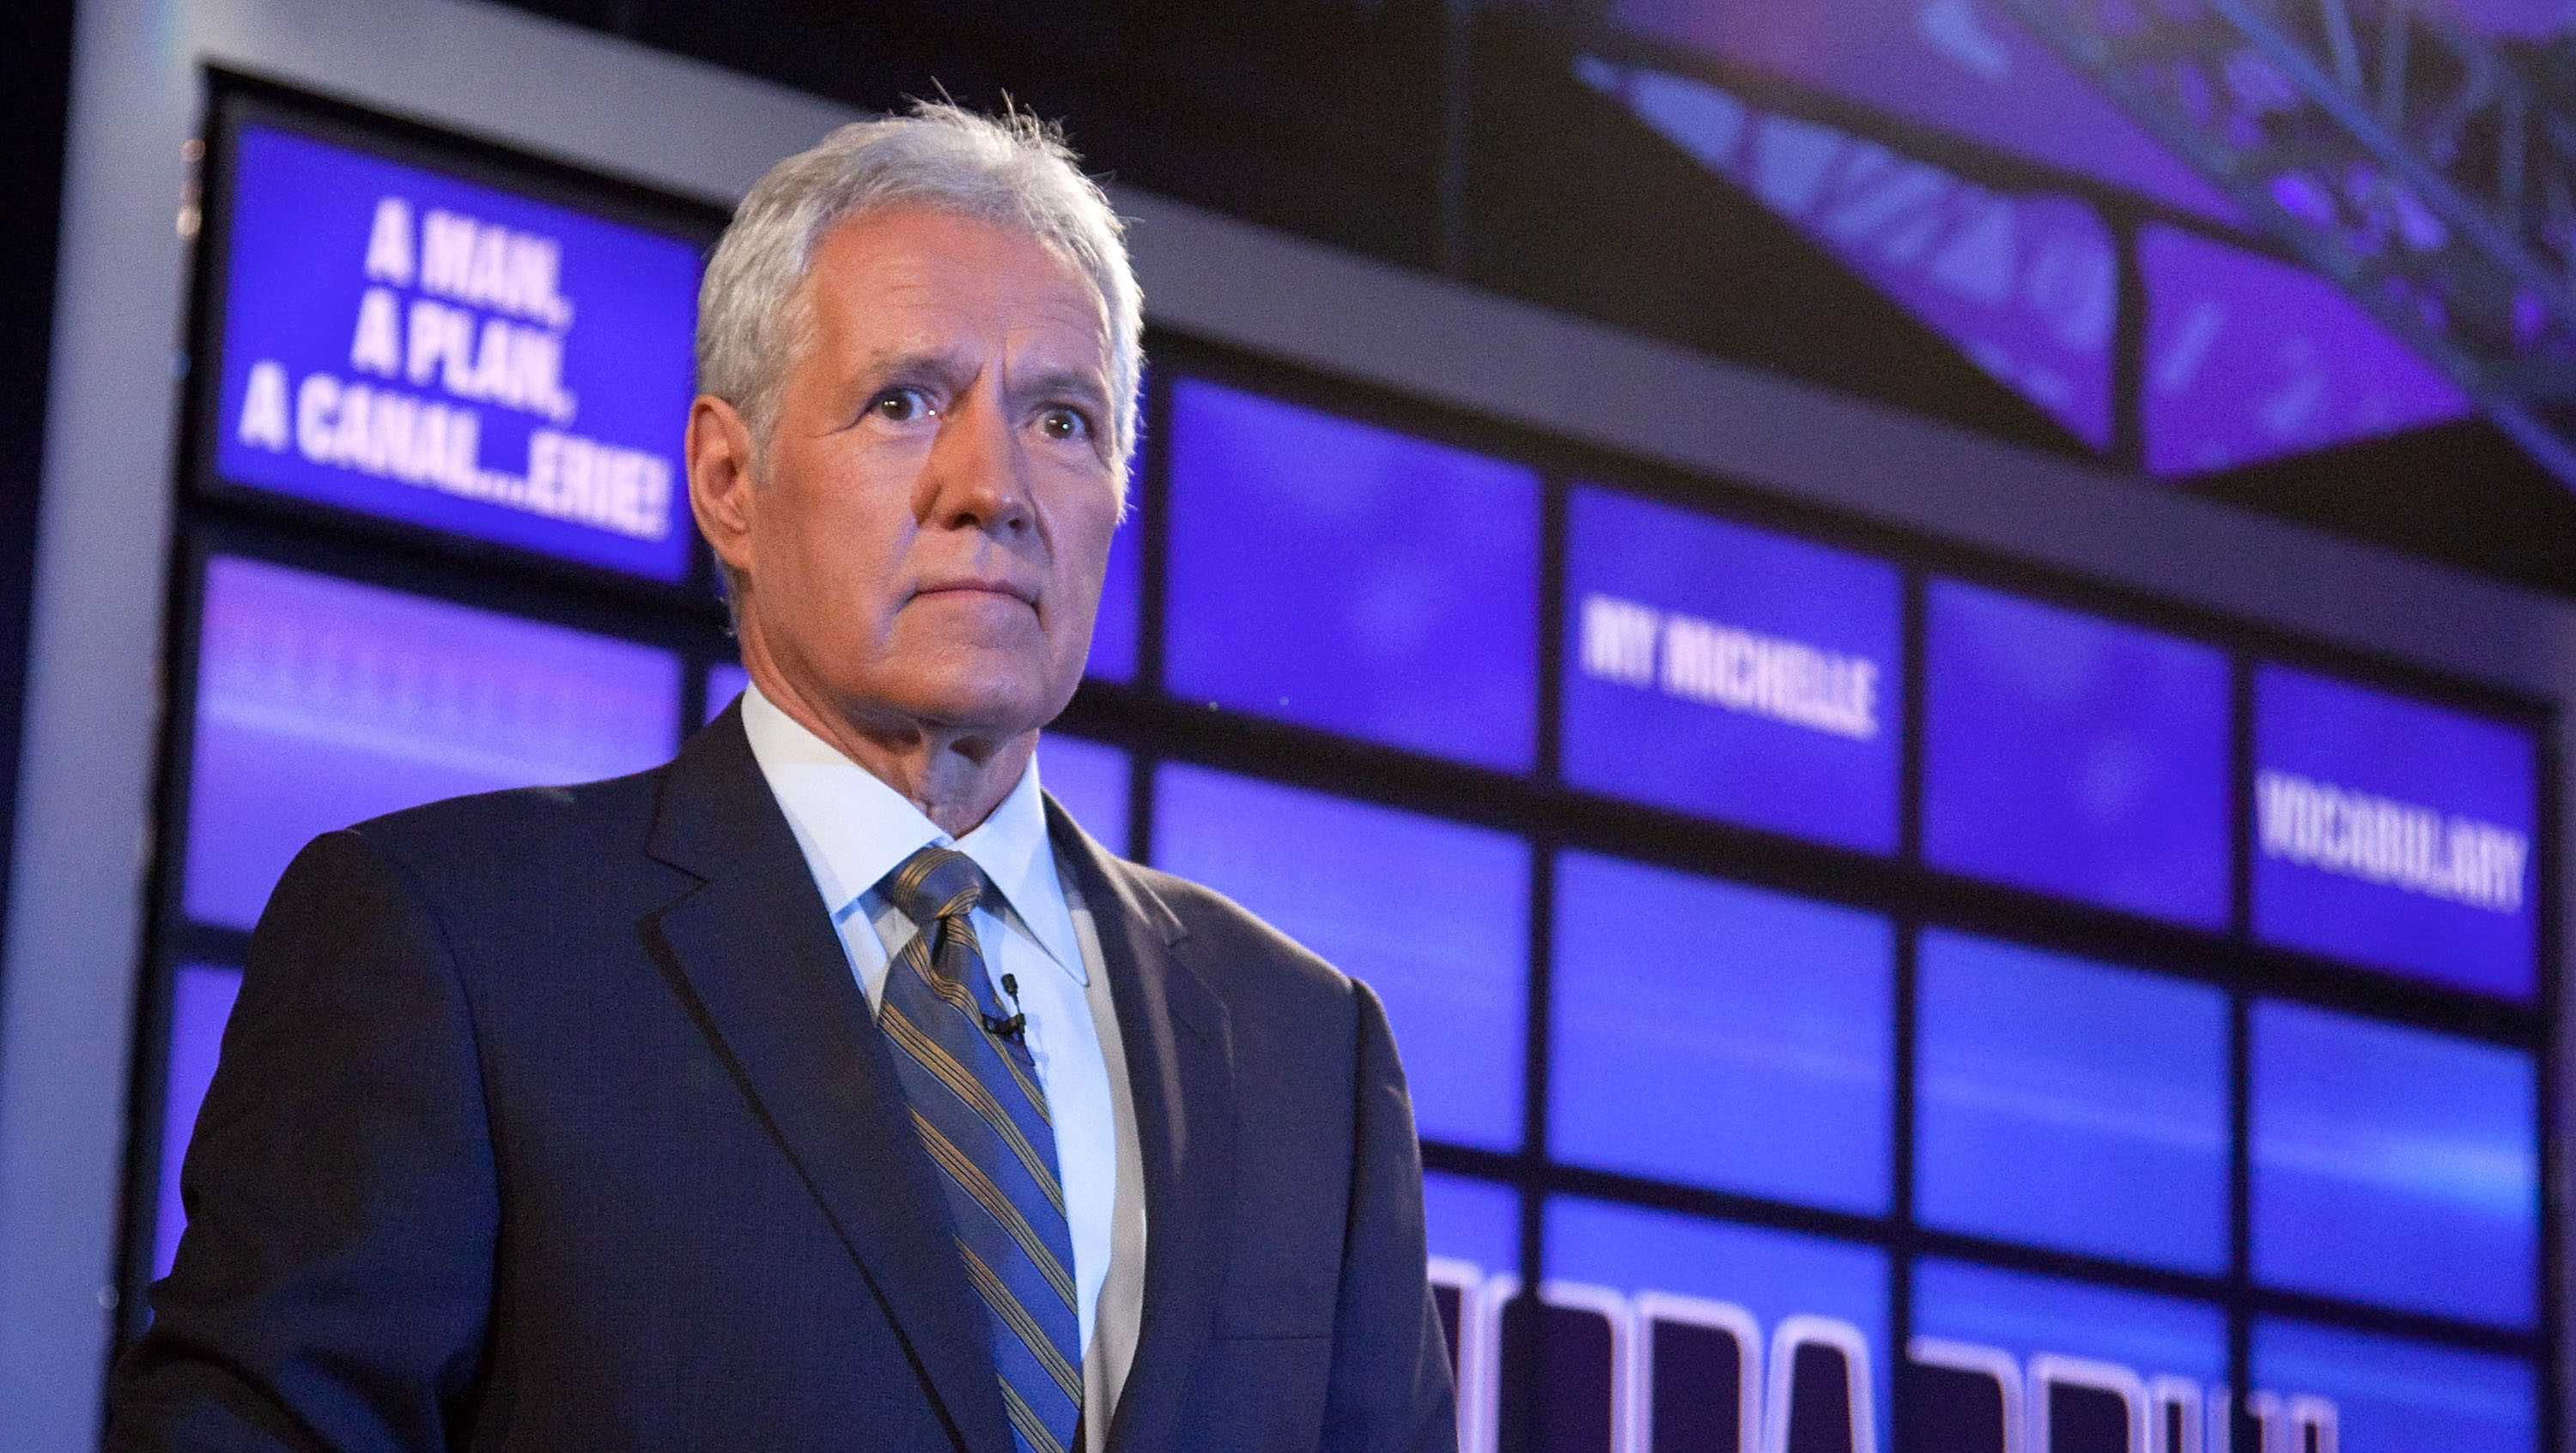 Host of 'Jeopardy!' Alex Trebek